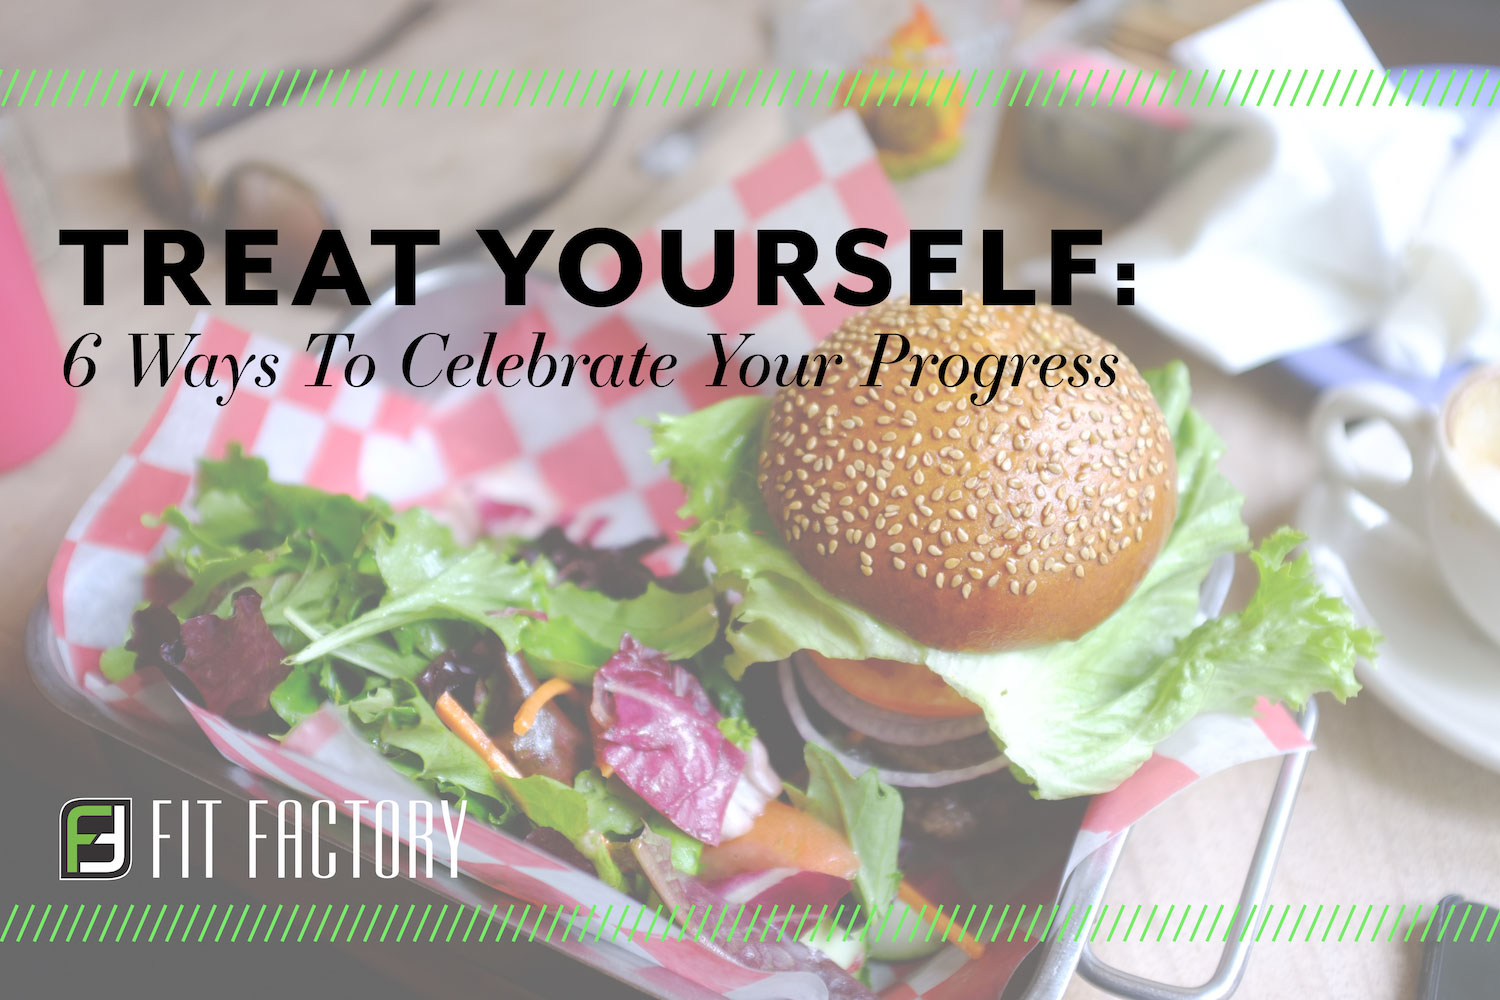 Treat Yourself: 6 Ways To Celebrate Your Progress